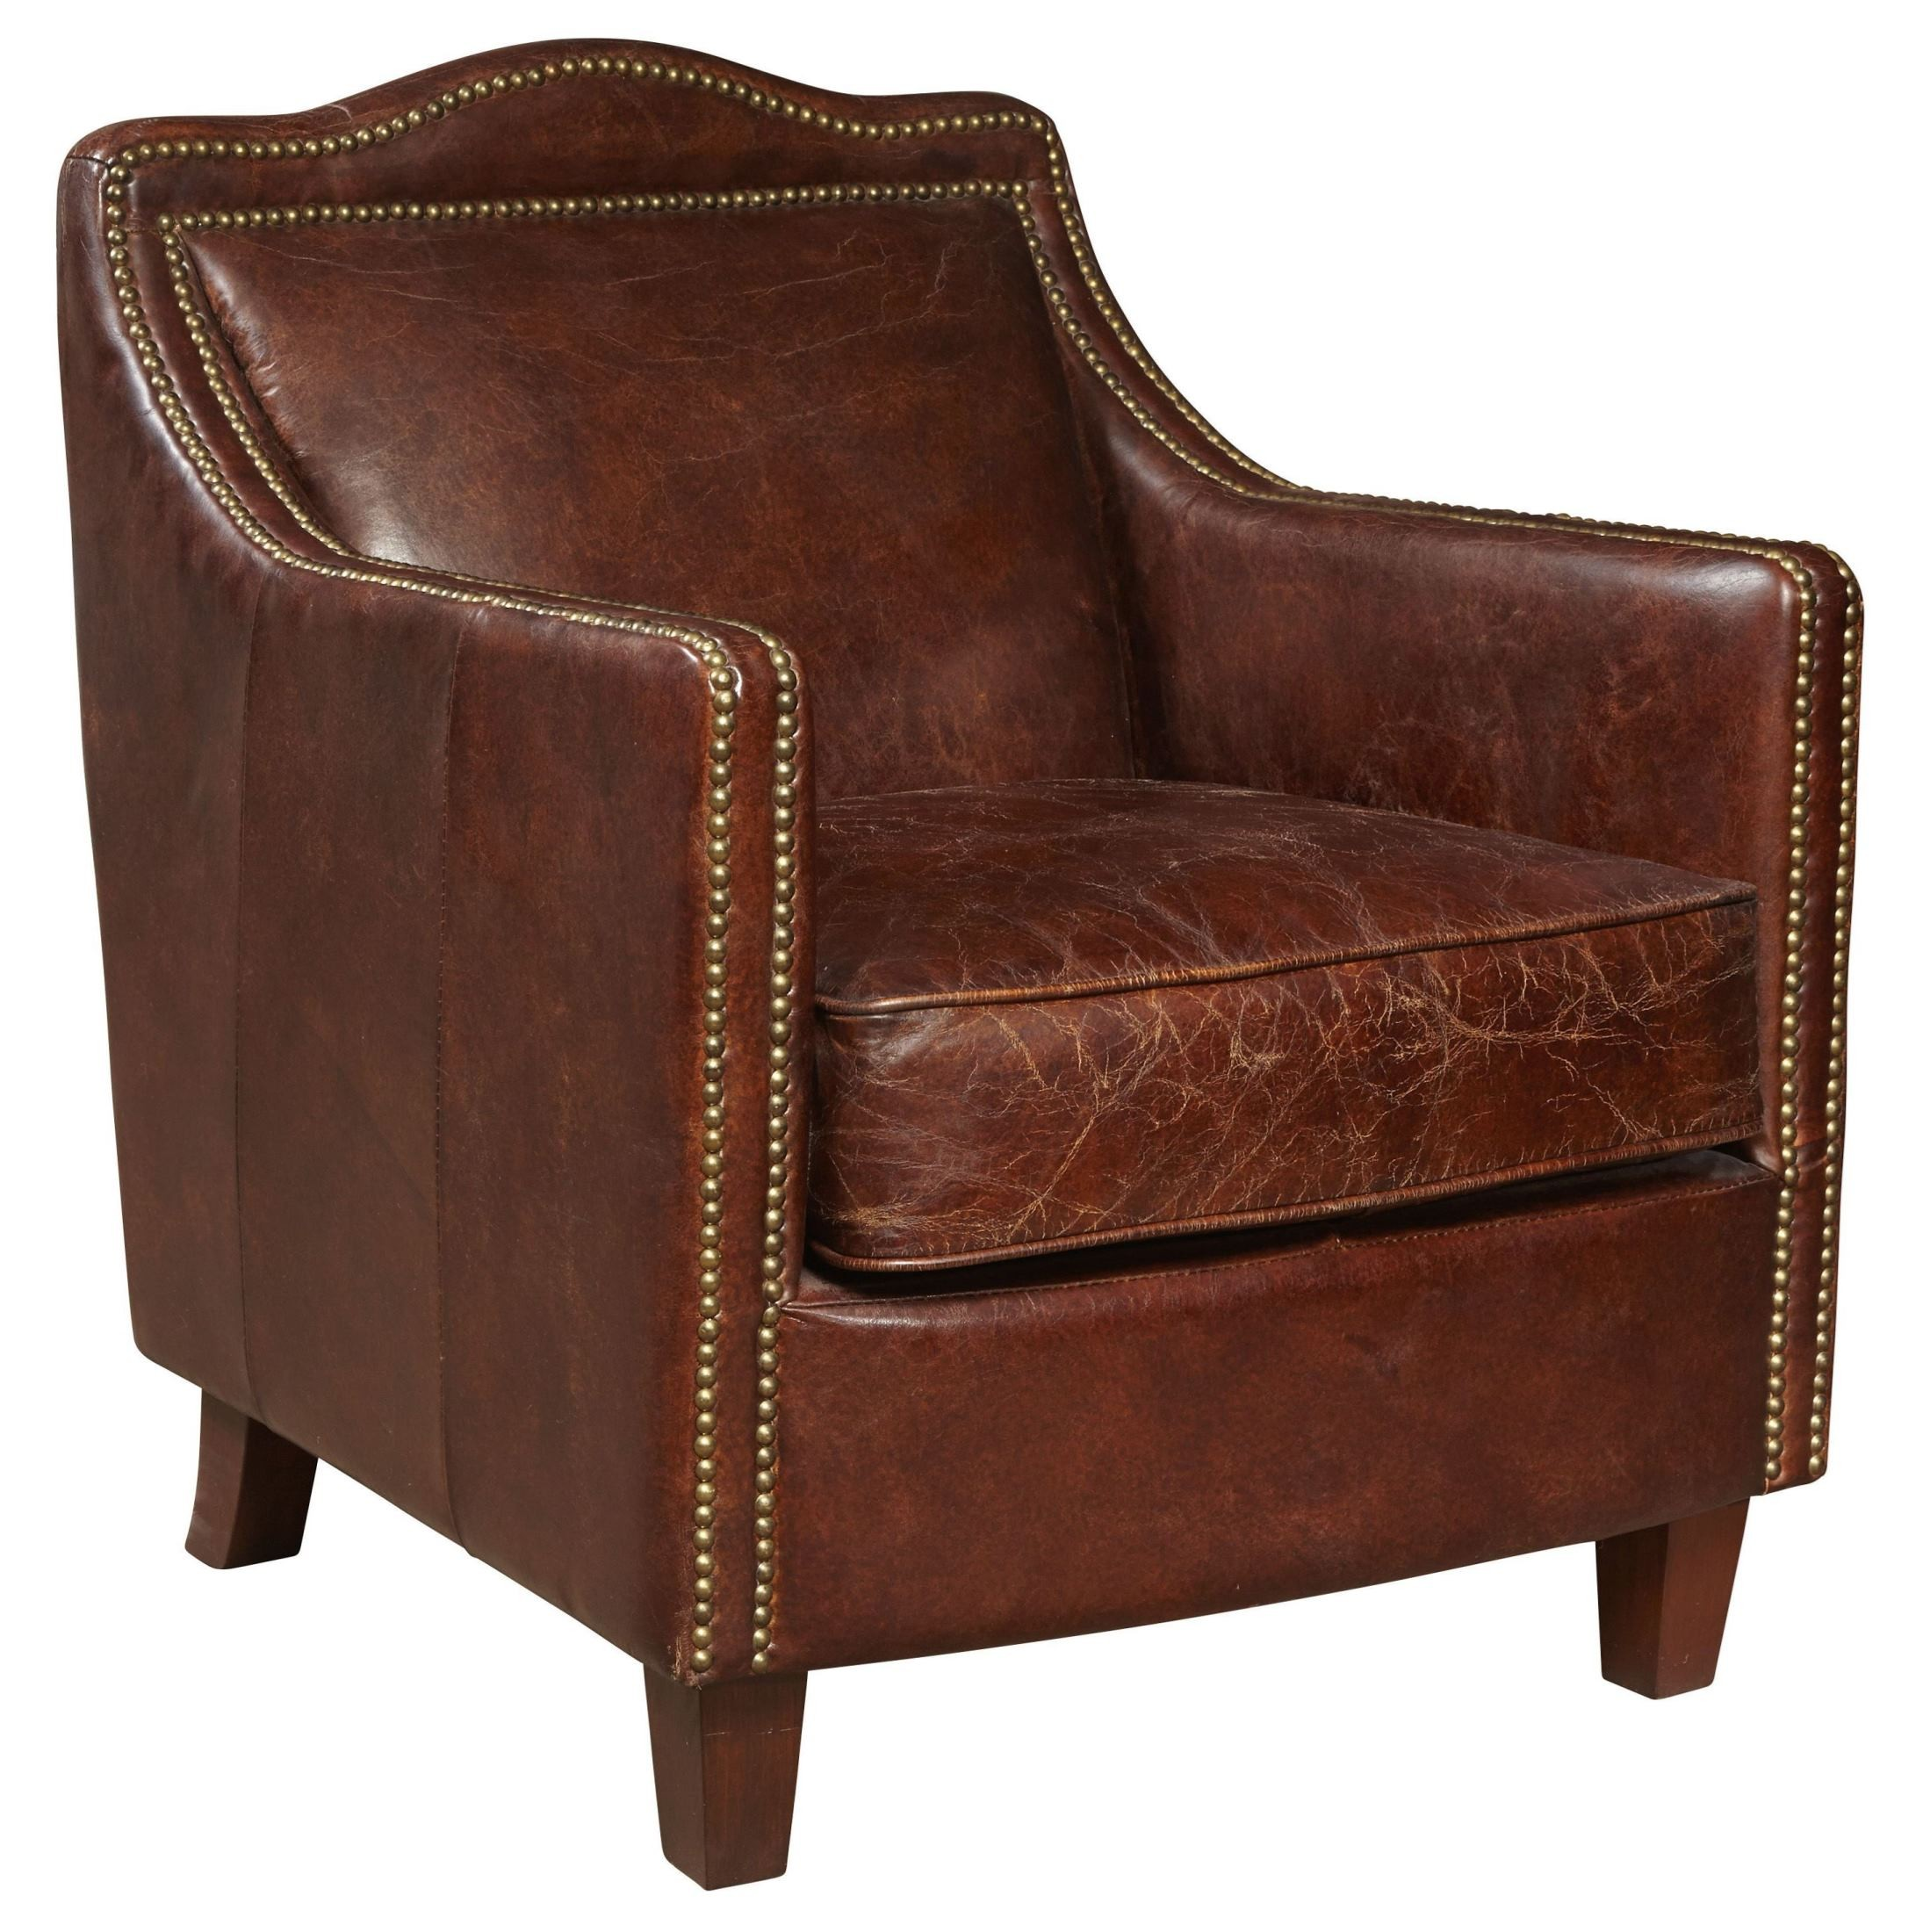 Brown Accent Chairs Danielle Brown Leather Accent Chair P006301 Pulaski